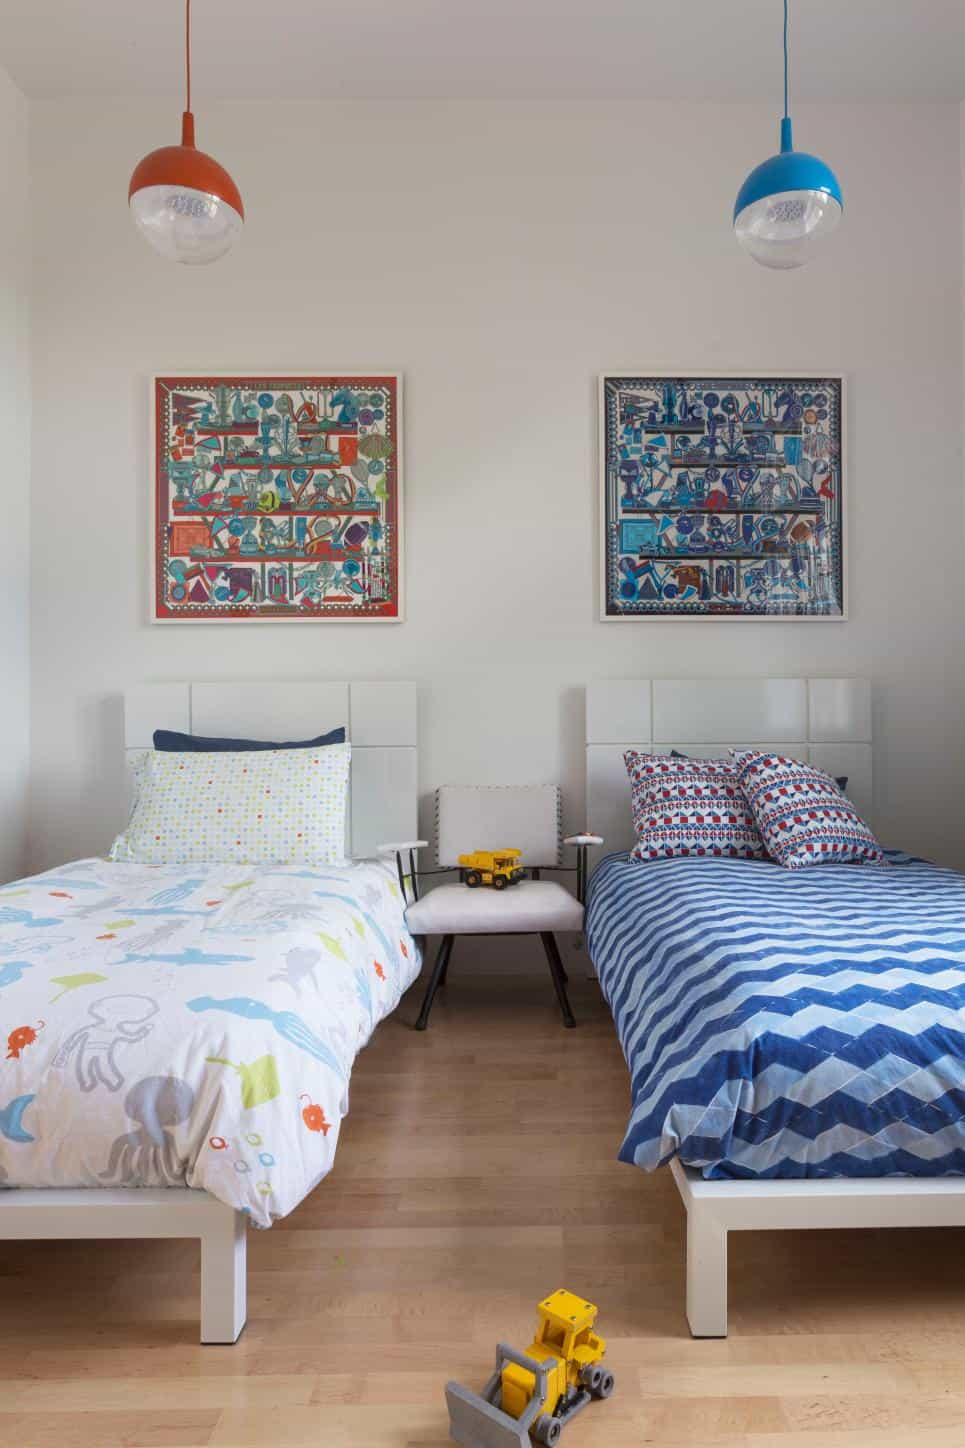 Shared kids bedroom by Ann Lowengart